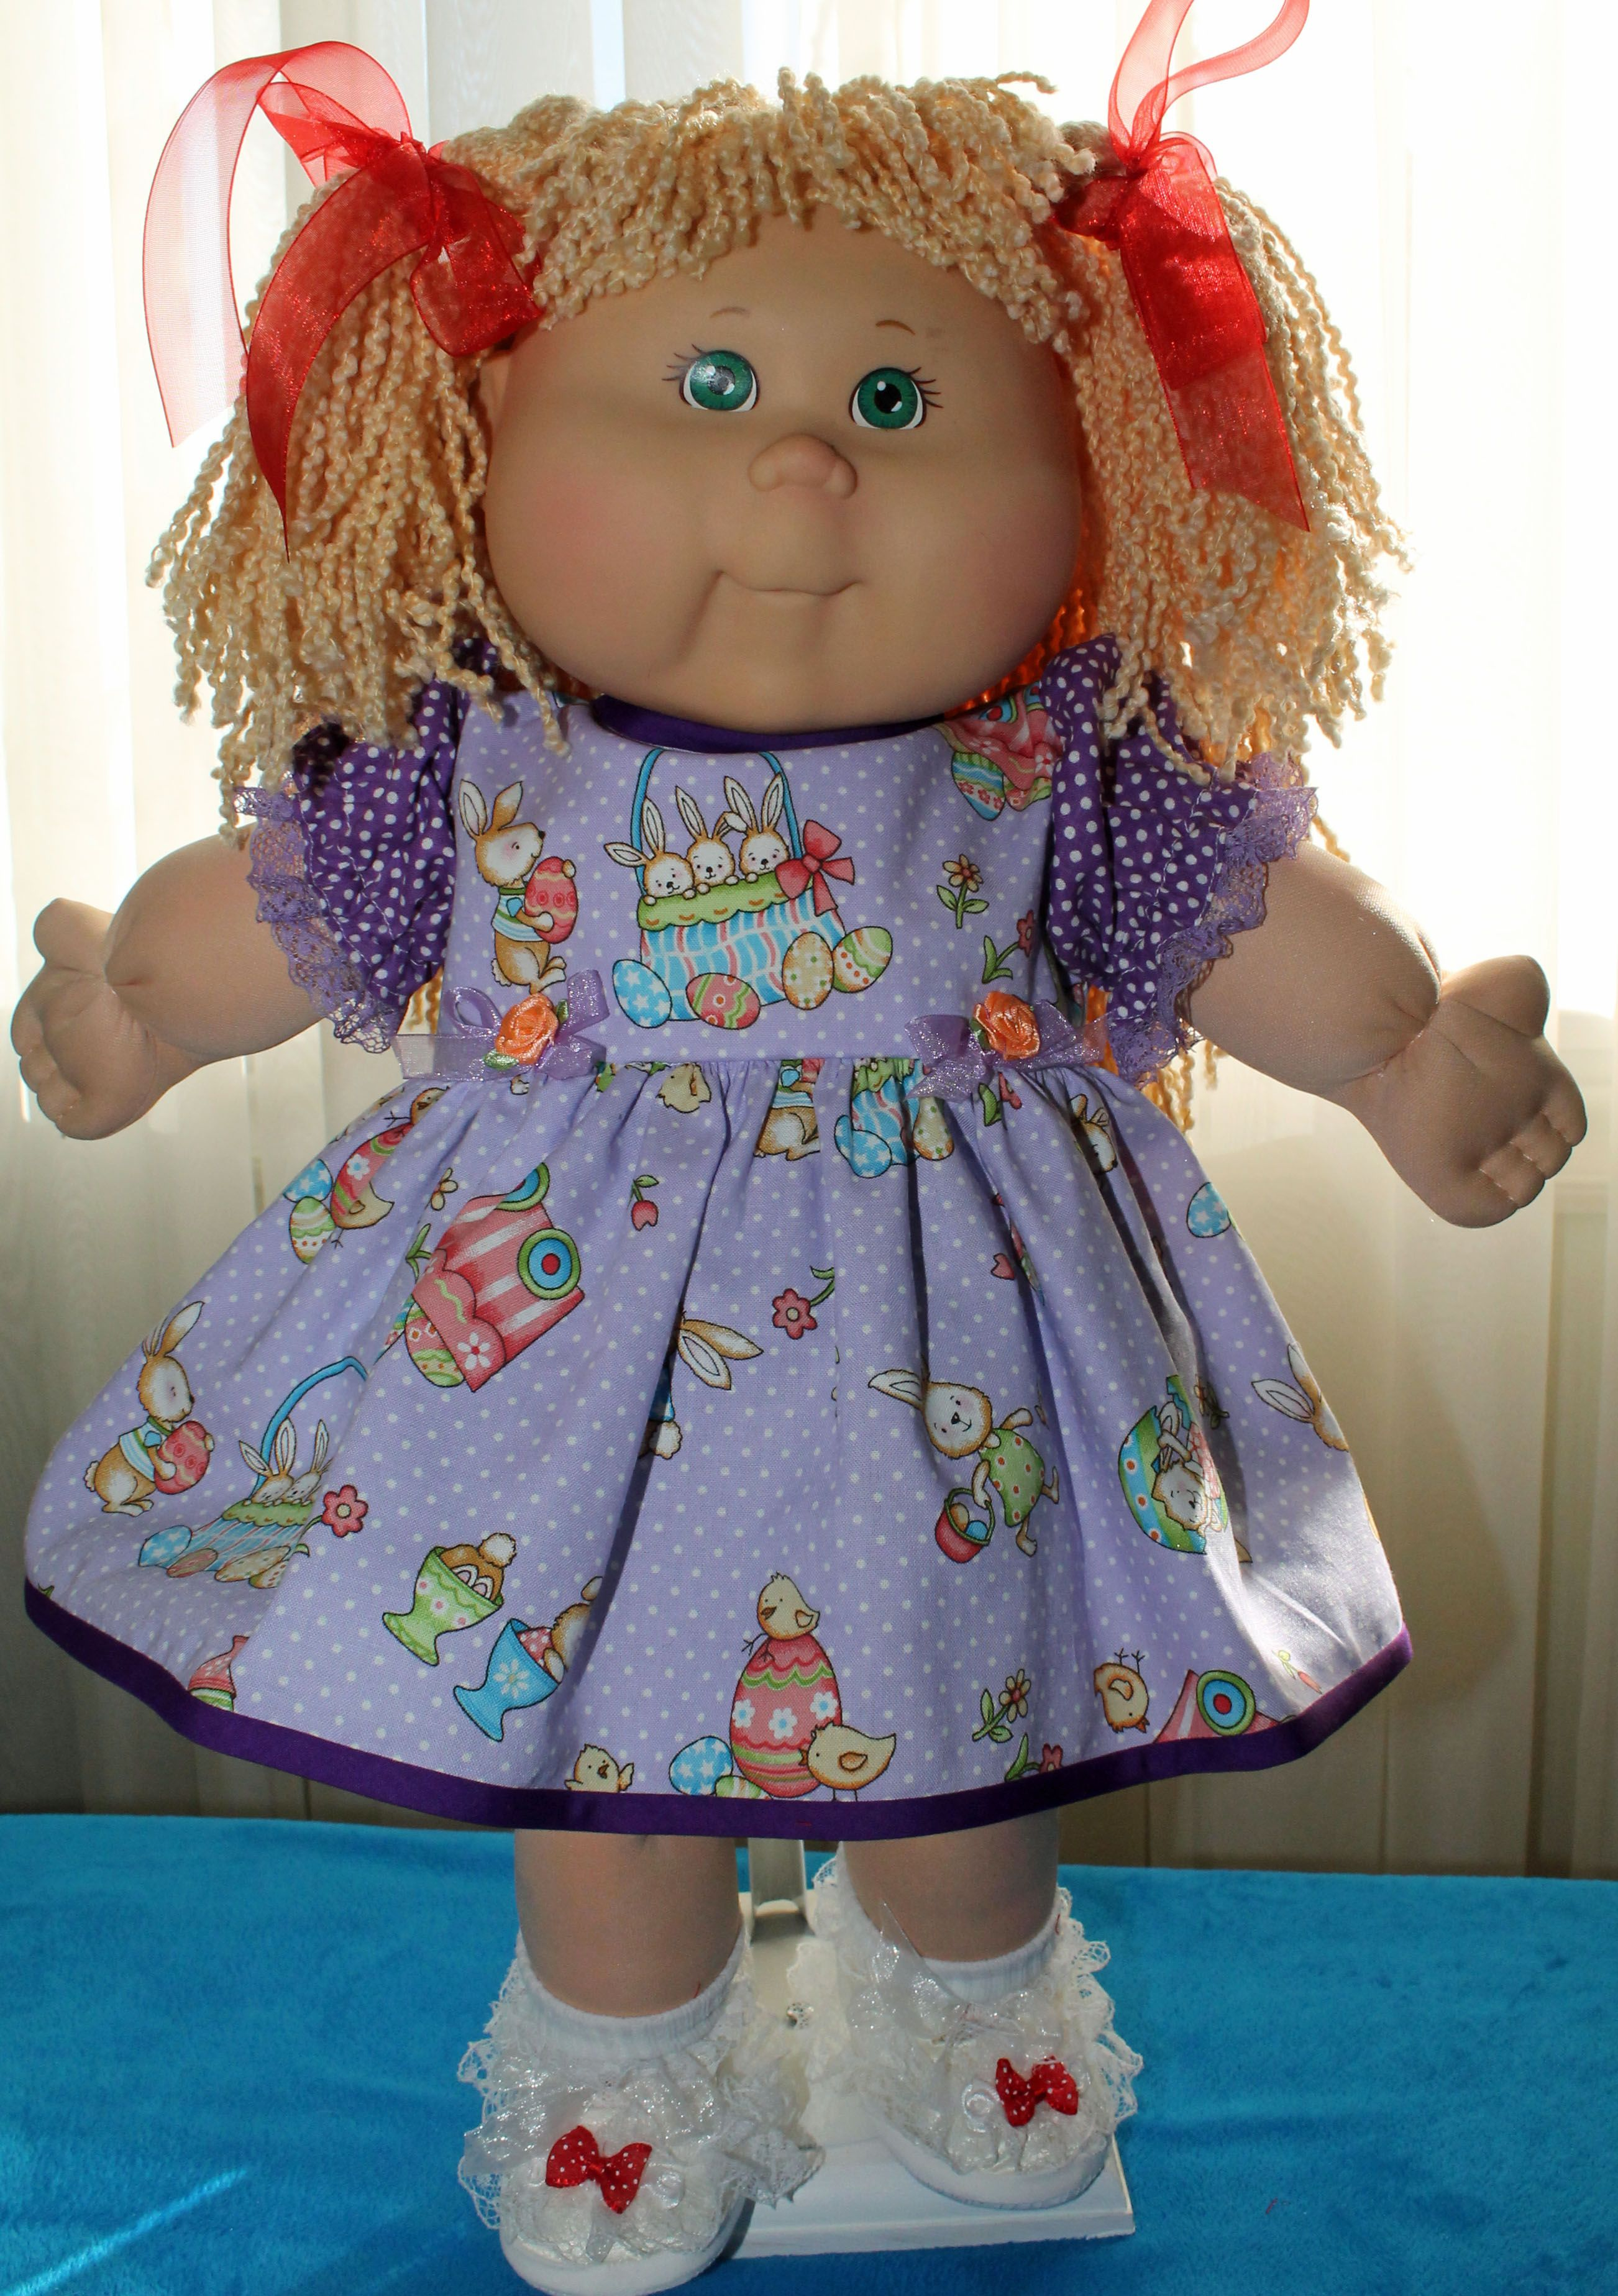 500+ Best CABBAGE PATCH DOLLS images | cabbage patch dolls, cabbage patch, cabbage  patch kids